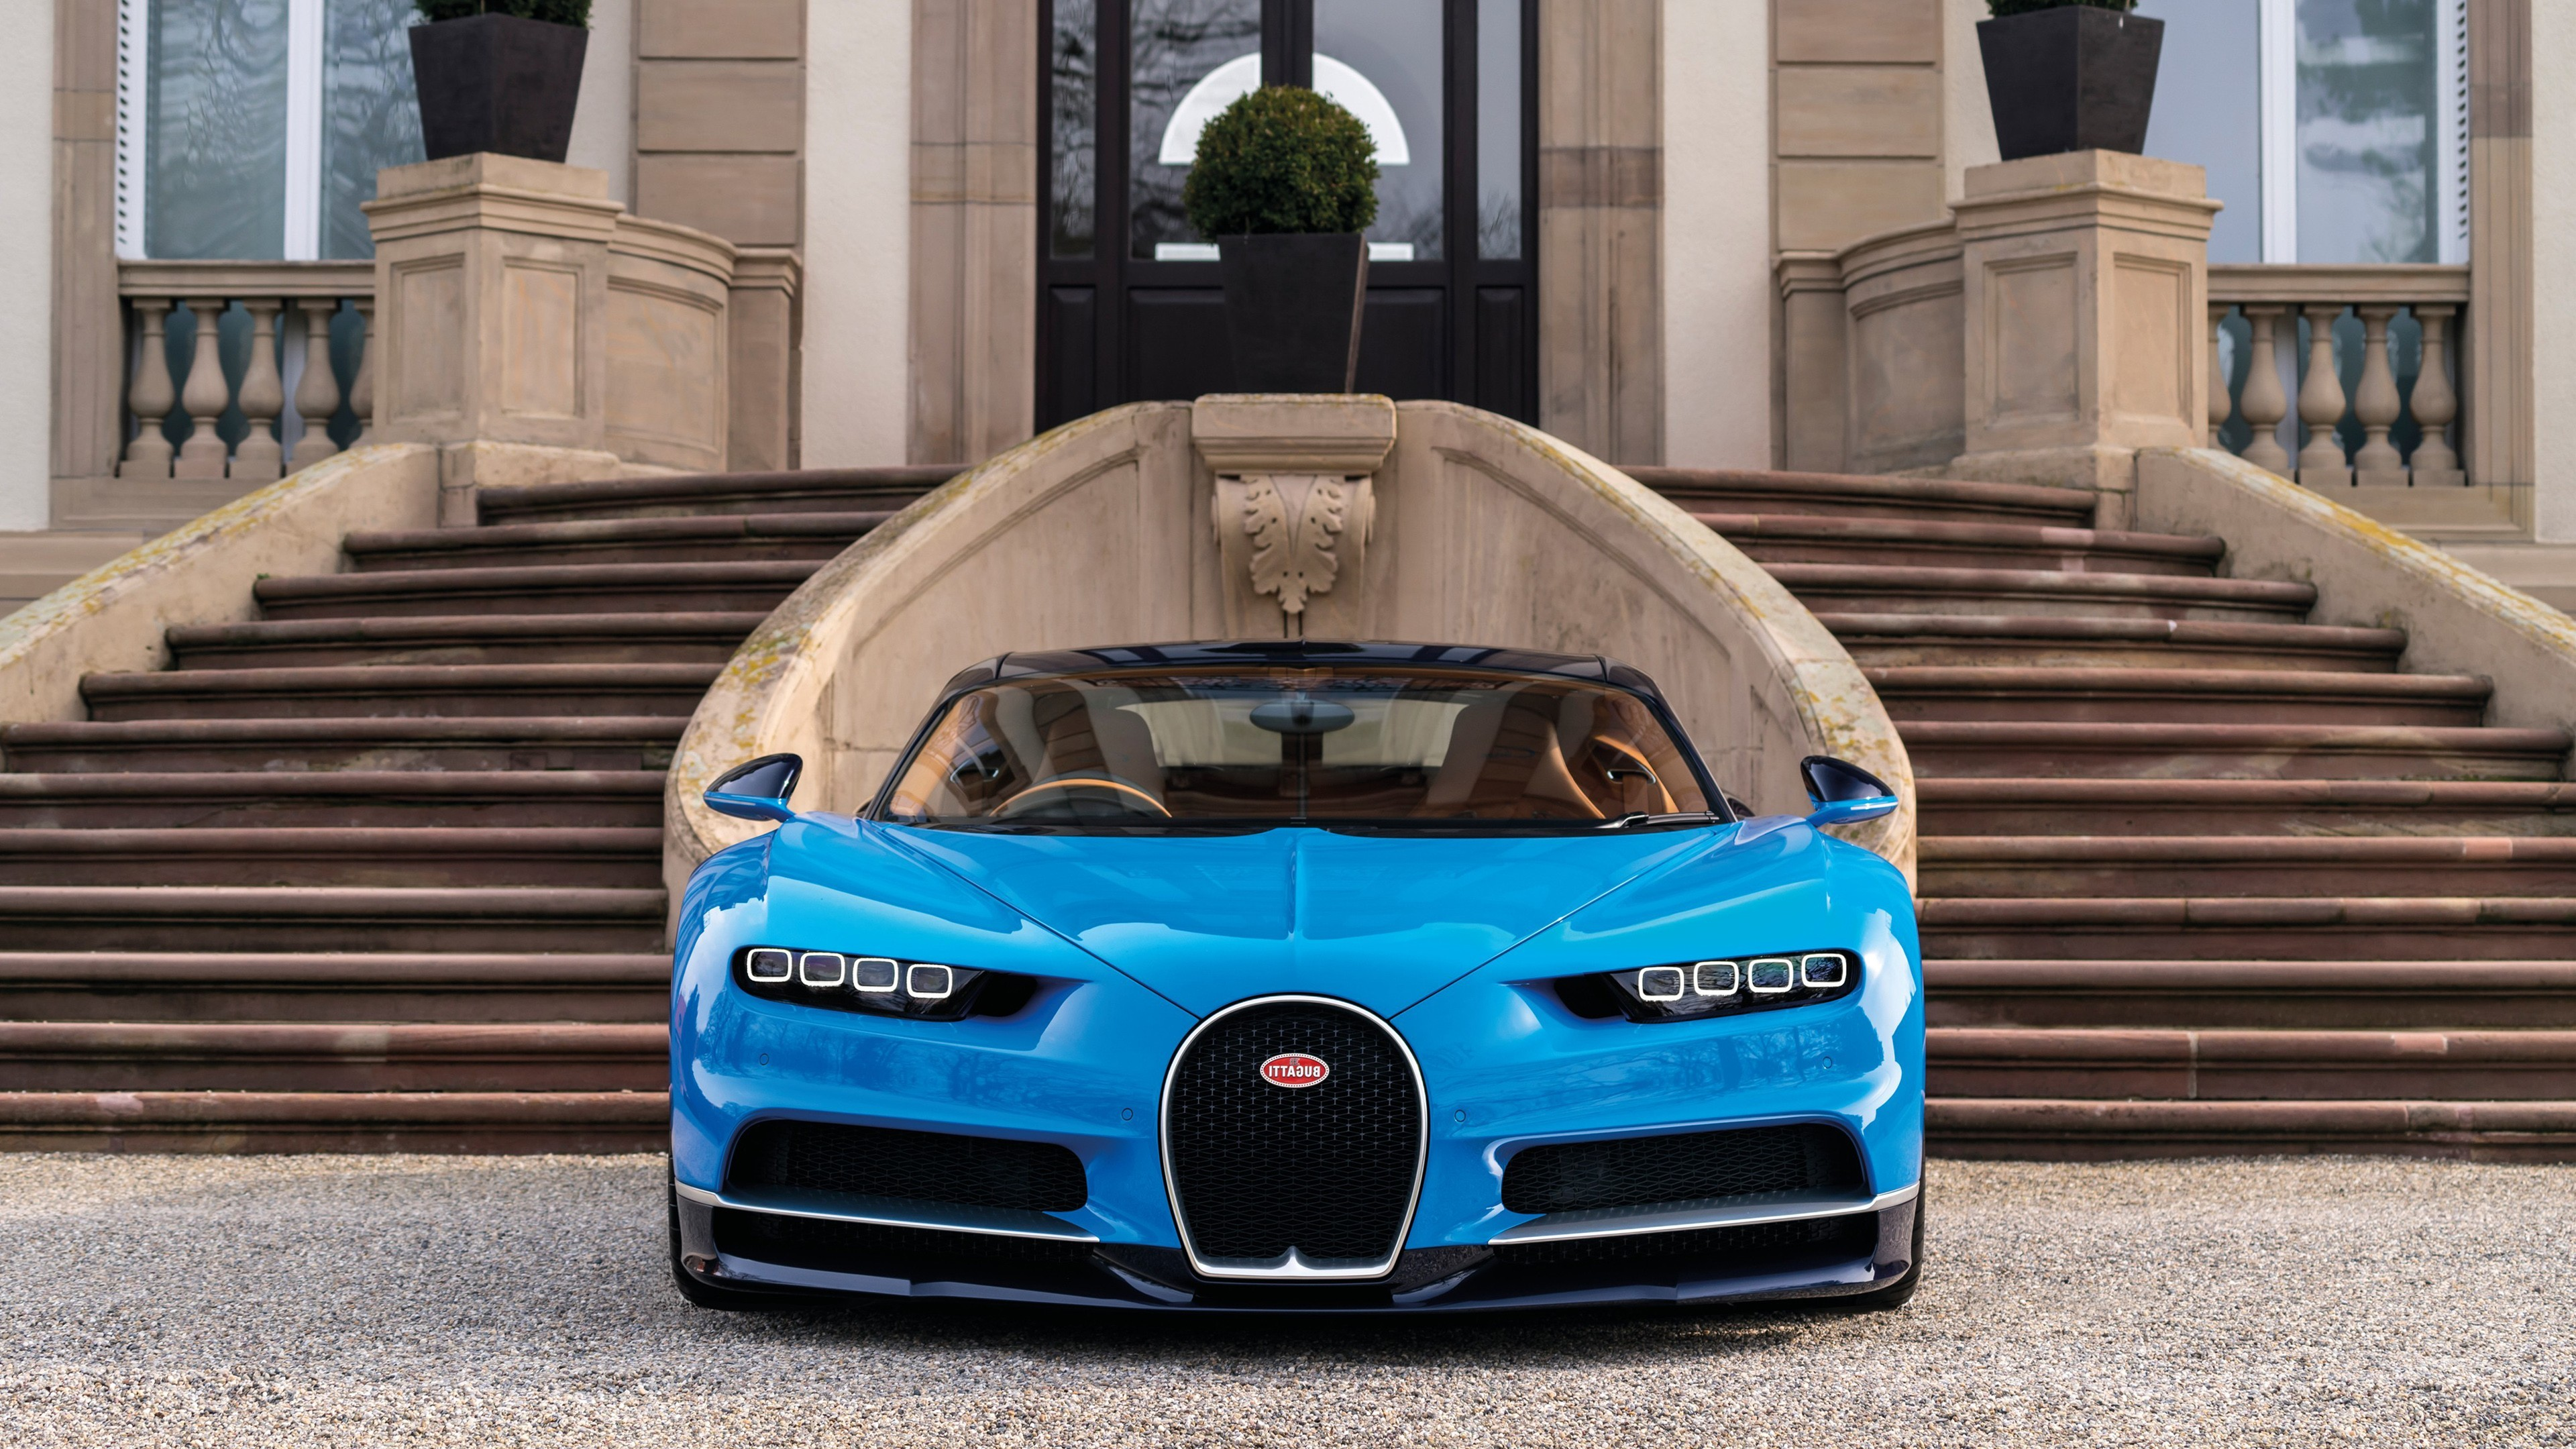 2017 Bugatti Chiron Hd Cars 4k Wallpapers Images Backgrounds Photos And Pictures